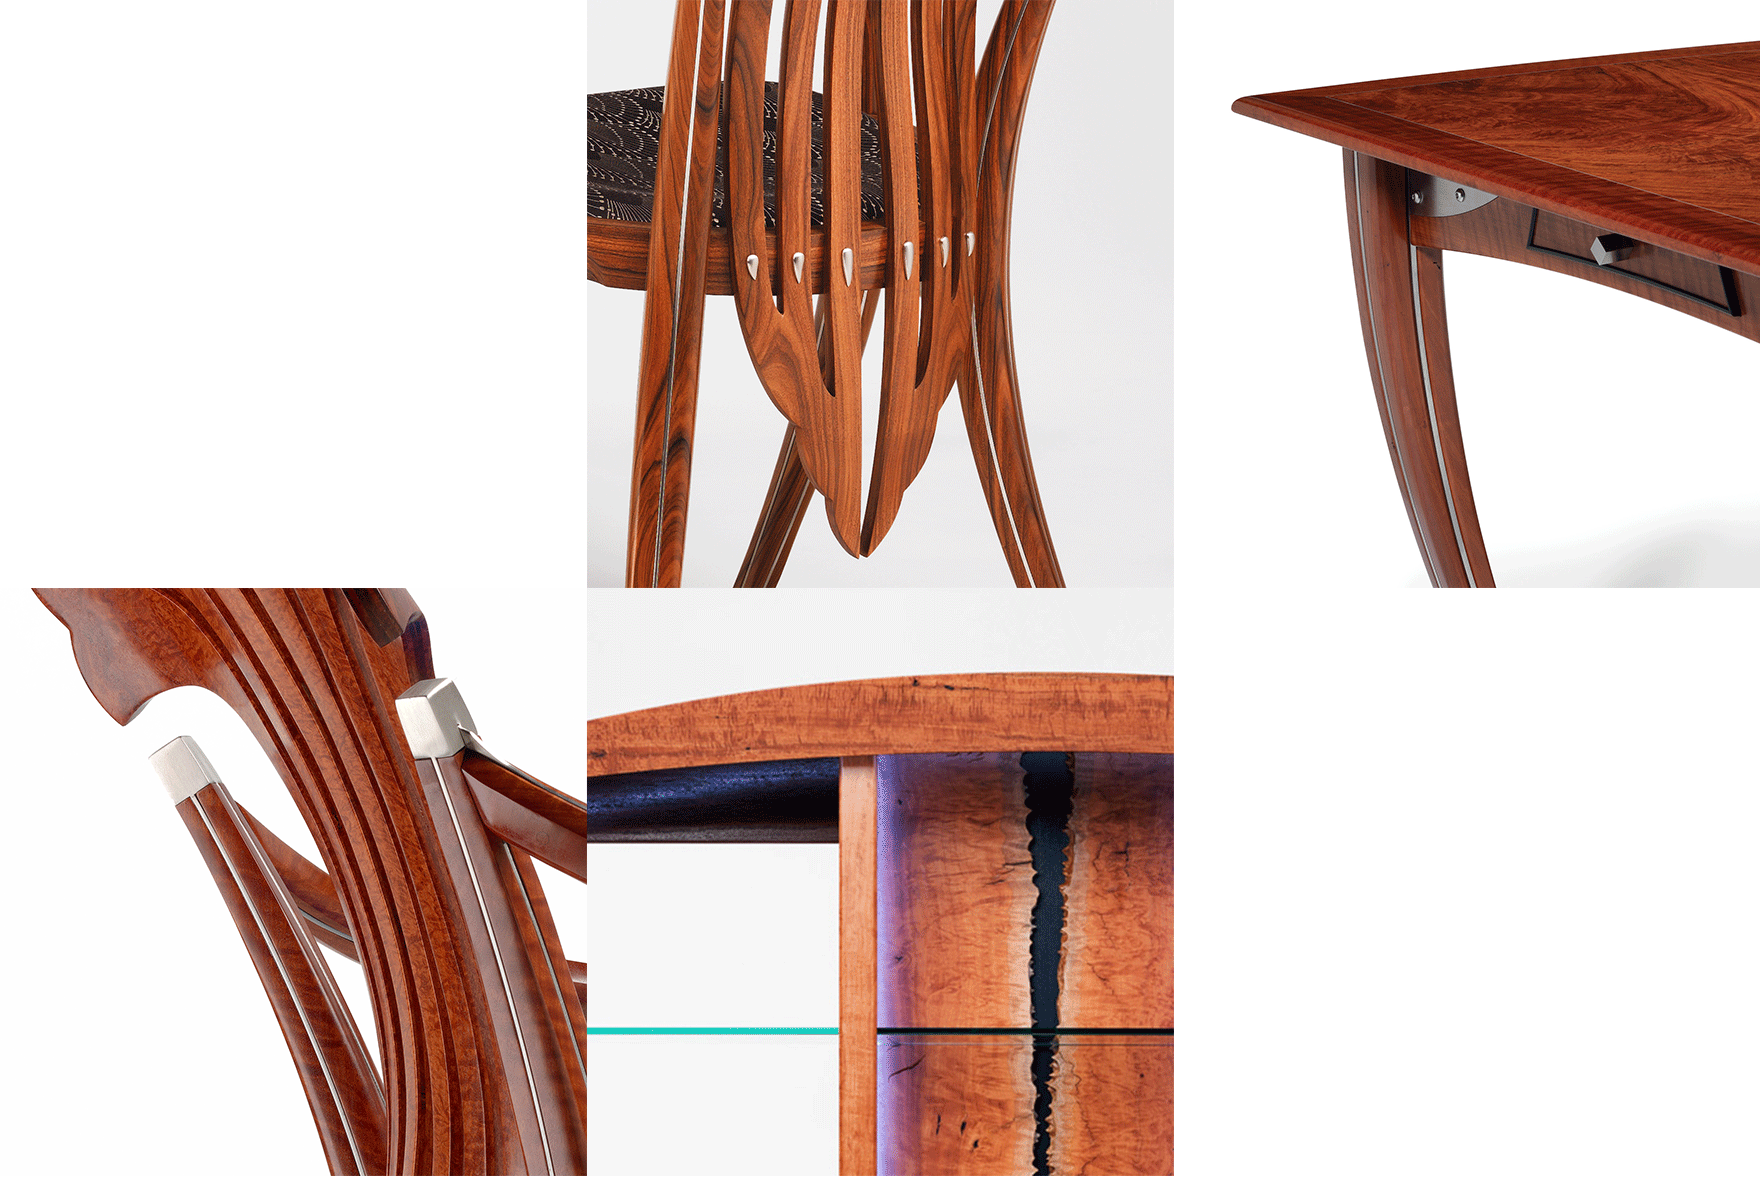 Furniture details by designer maker Gray Hawk